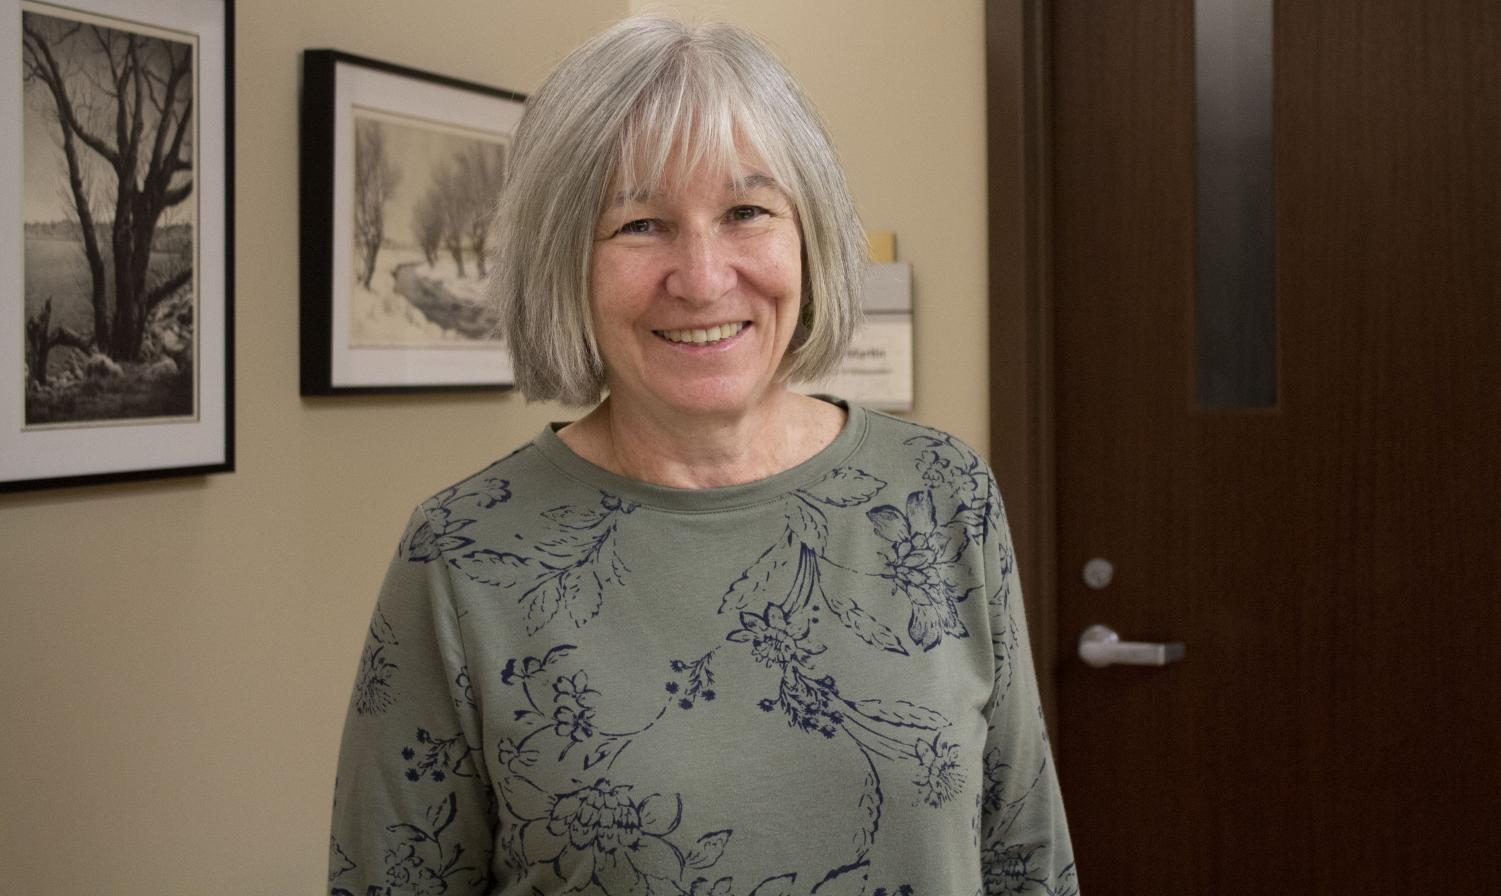 Dr. Johnson is looking forward to retirement after 32 years at Baker.